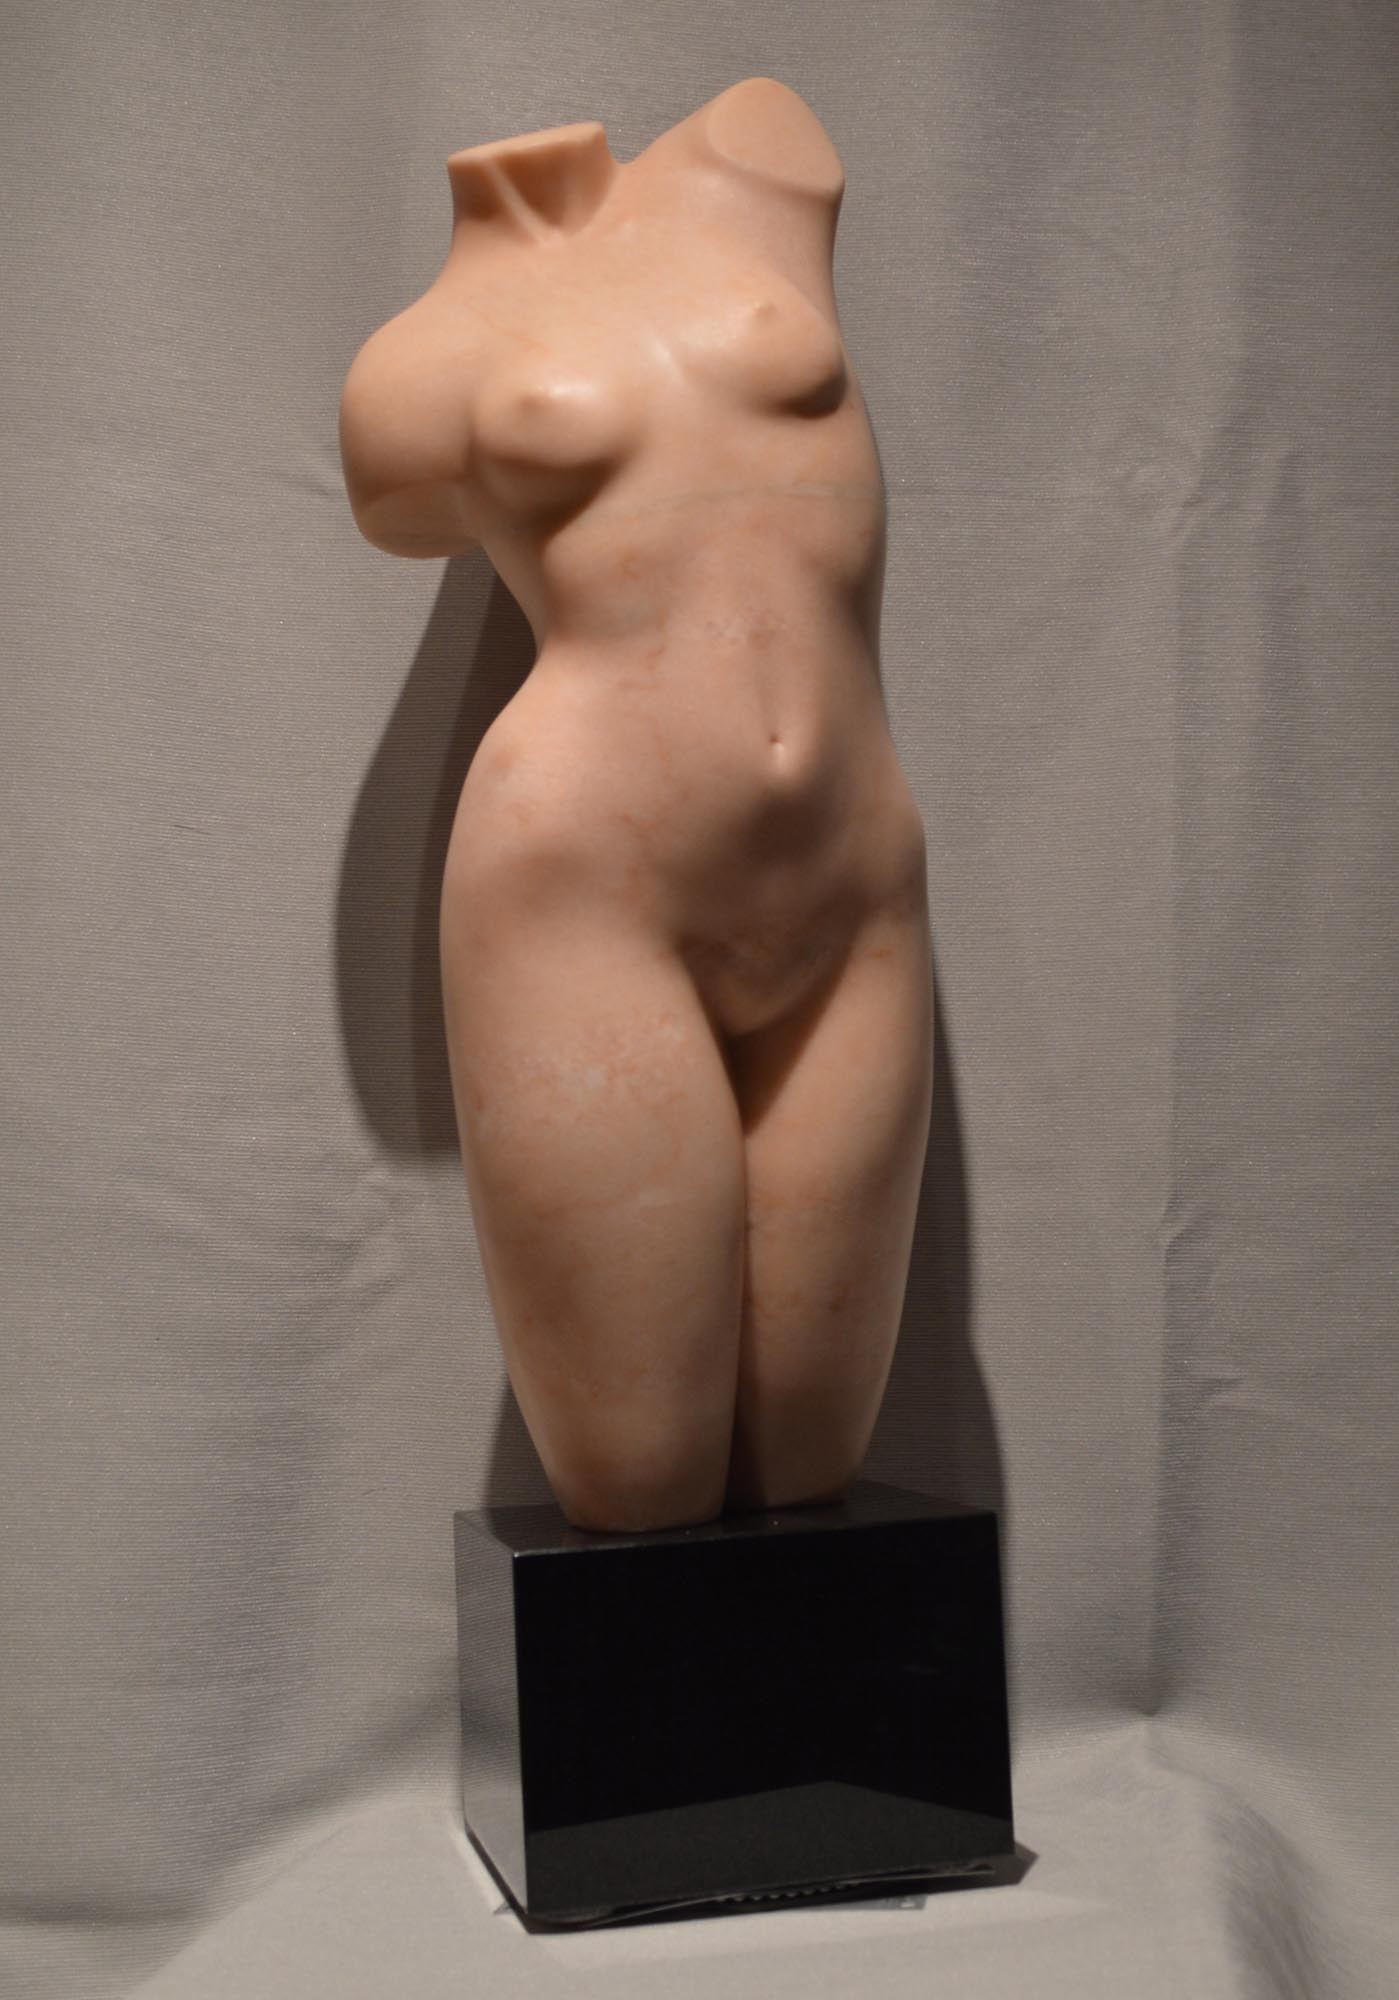 michael binkley sculptor stone sculpture artist female nude marble statue vancouver canada